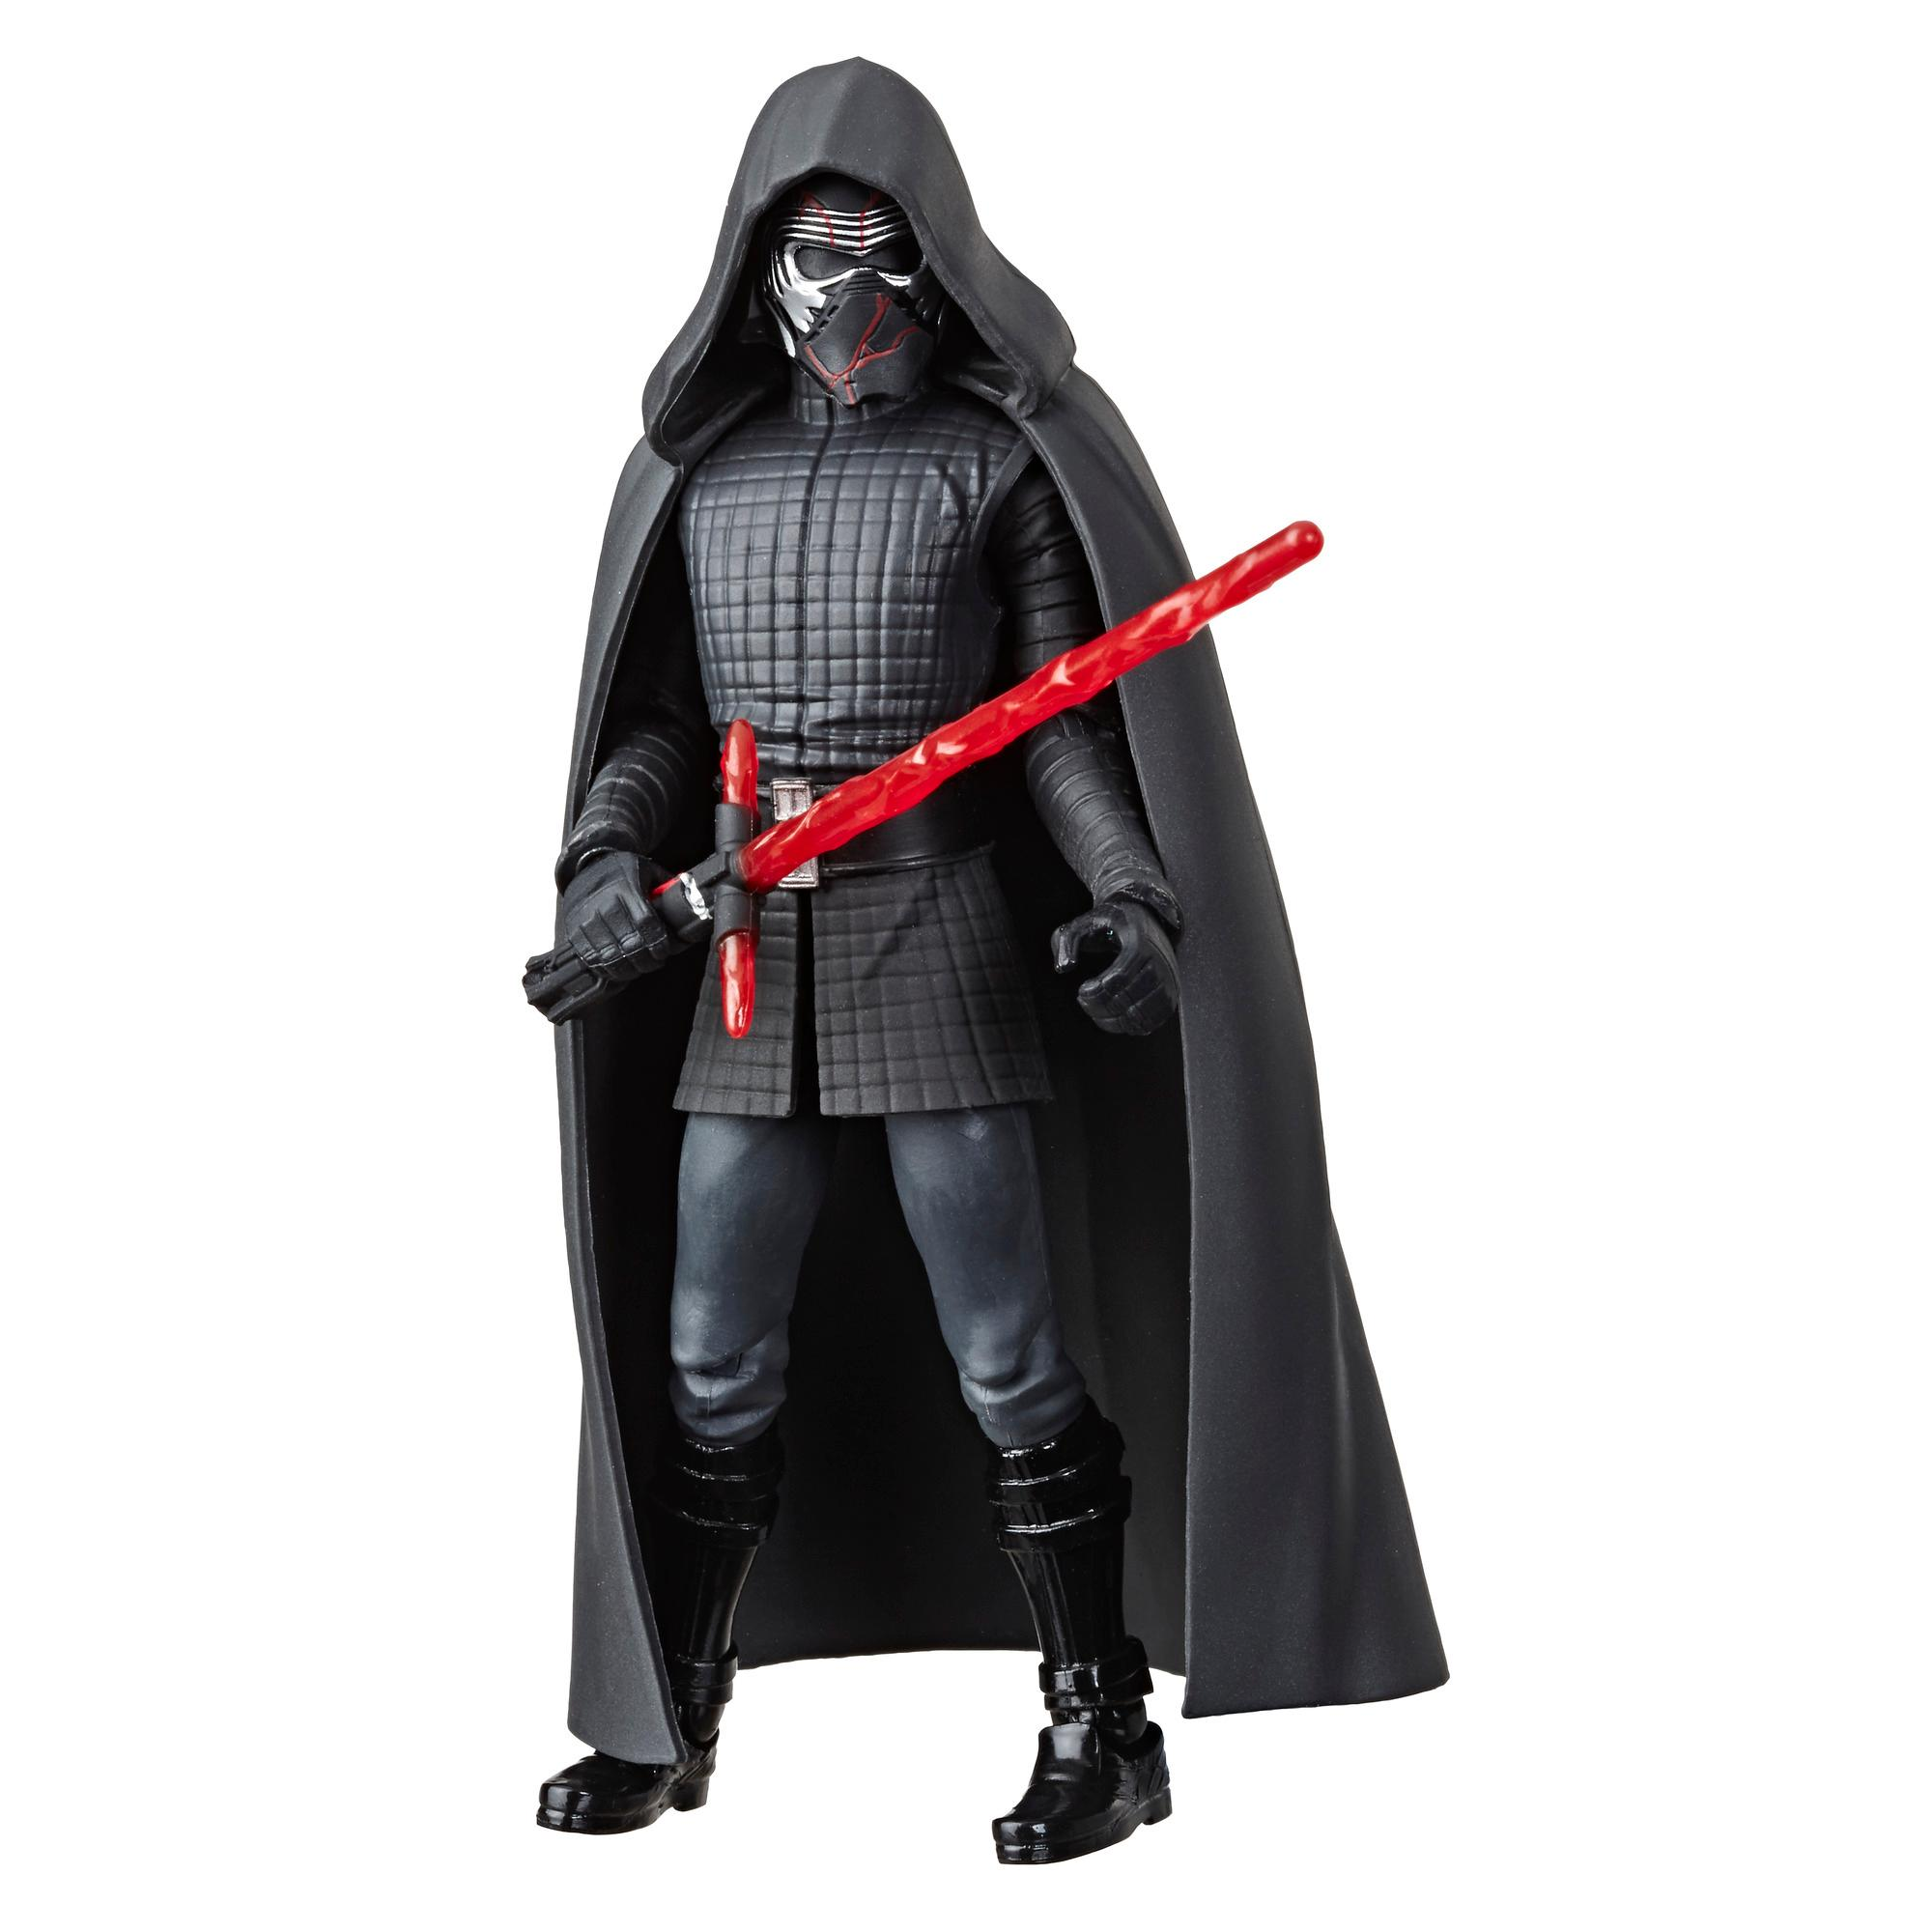 Star Wars Galaxy of Adventures Supreme Leader Kylo Ren Özel Figür